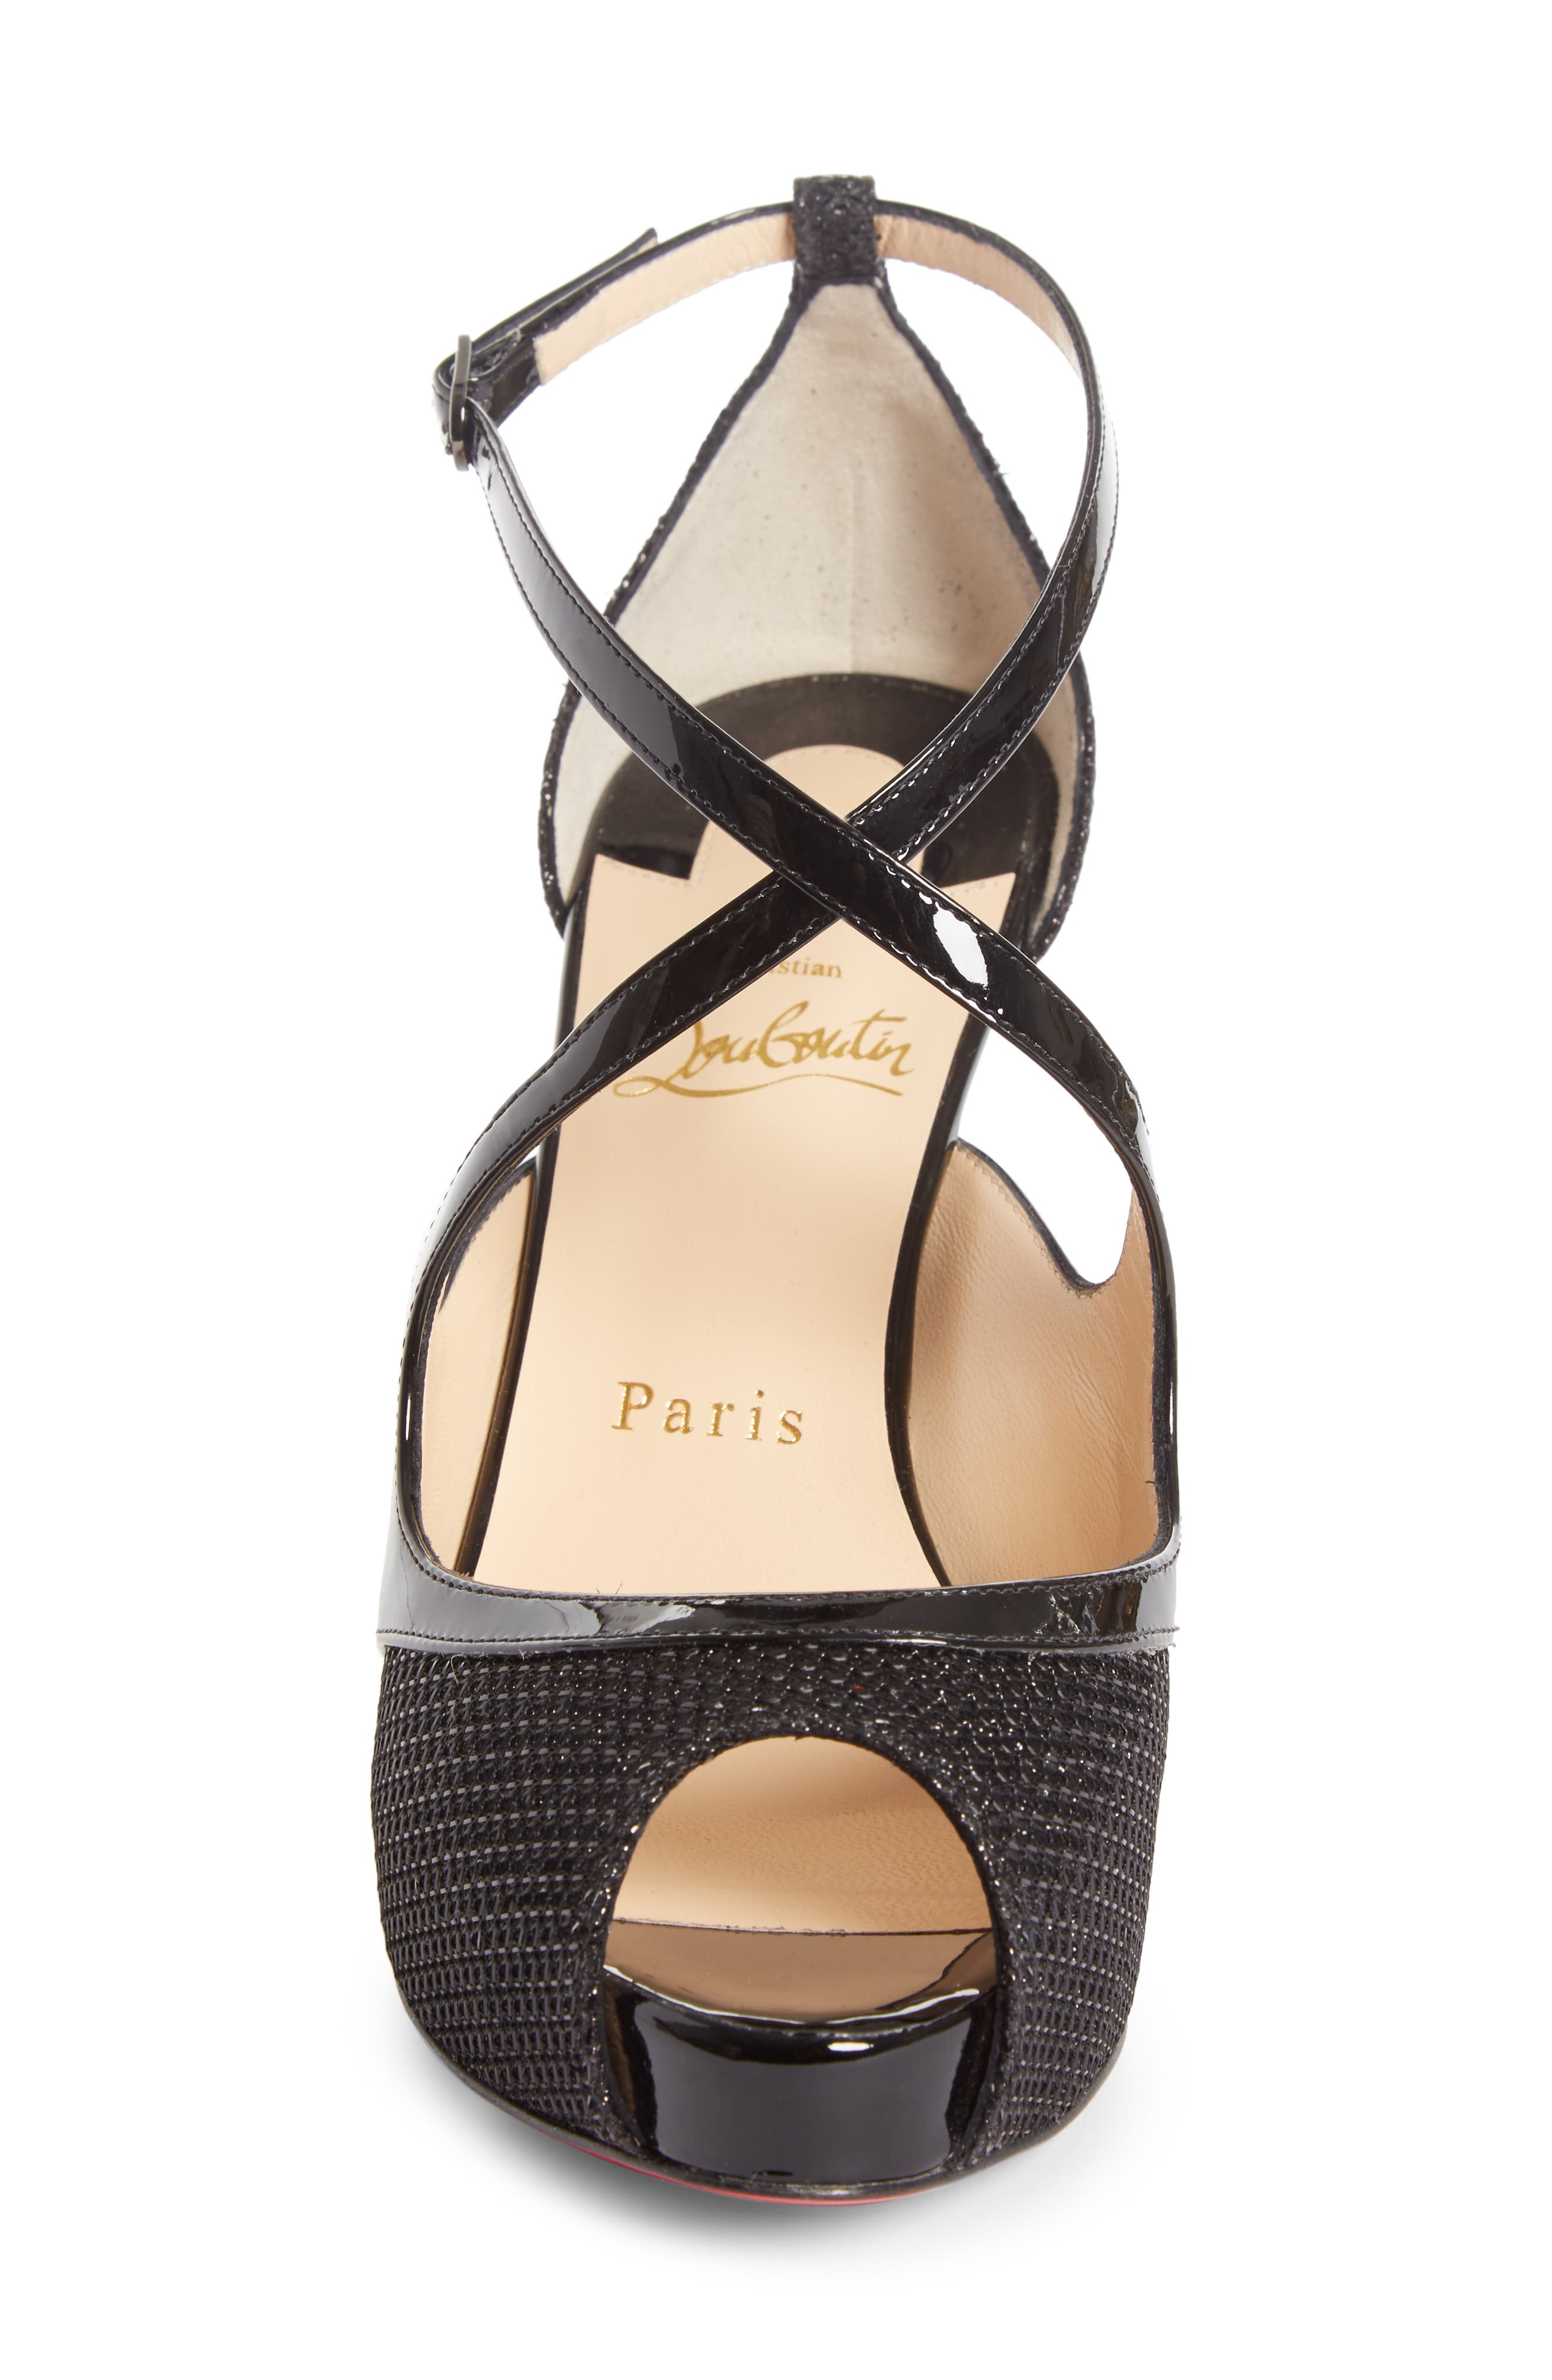 Mira Bella Sandal,                             Alternate thumbnail 4, color,                             001